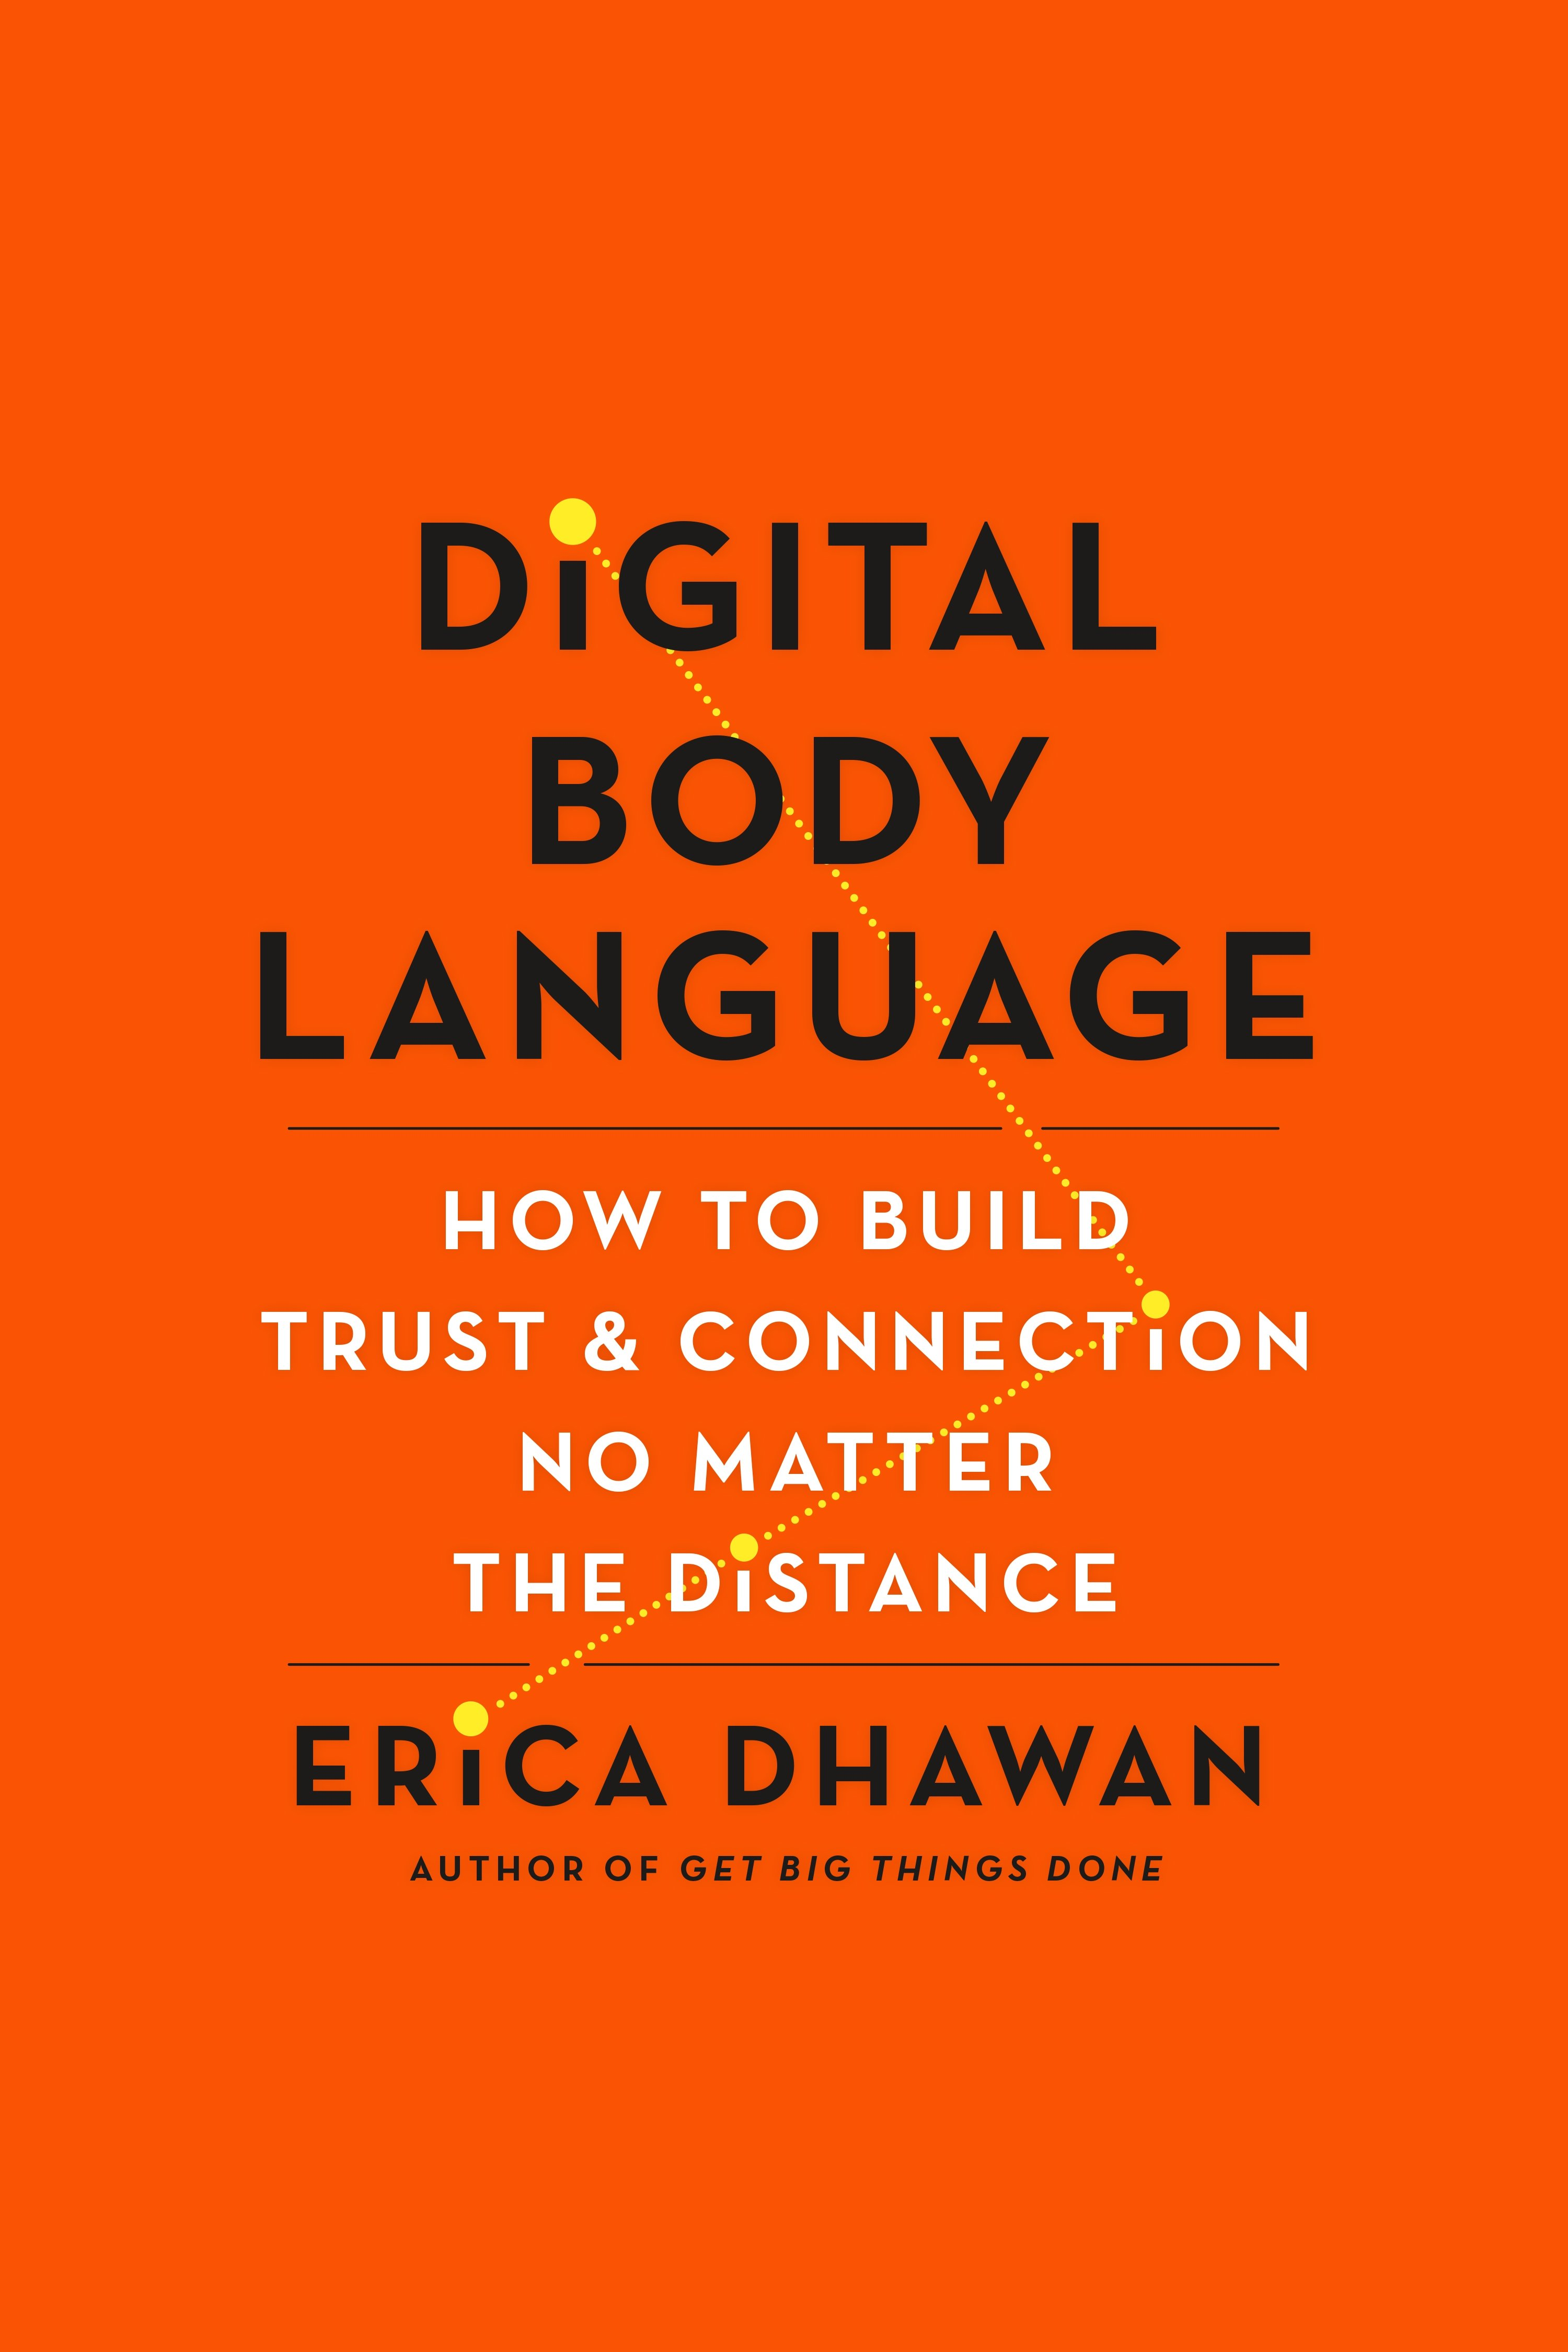 Digital Body Language How to Build Trust and Connection, No Matter the Distance